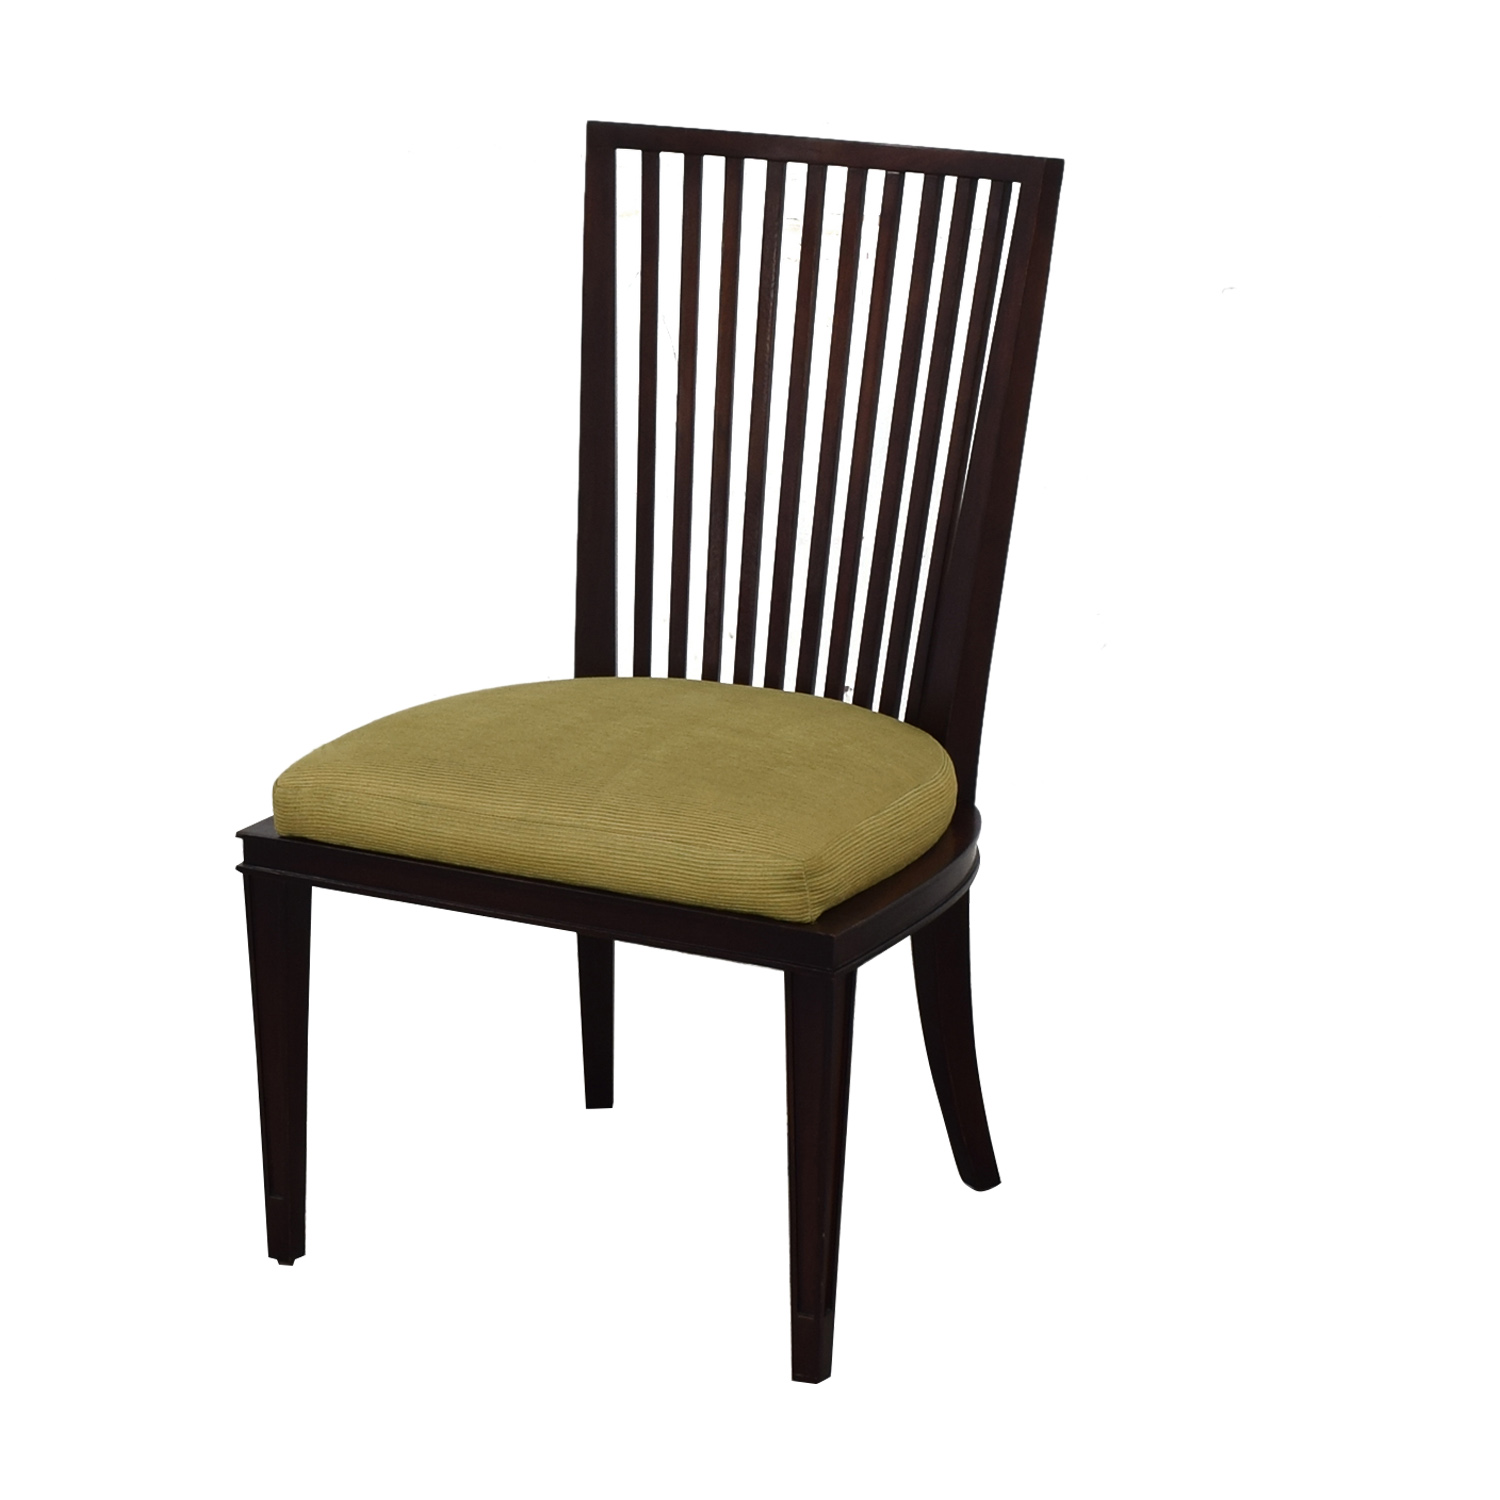 Baker Furniture Barbara Barry by Baker Dining Room Chairs used